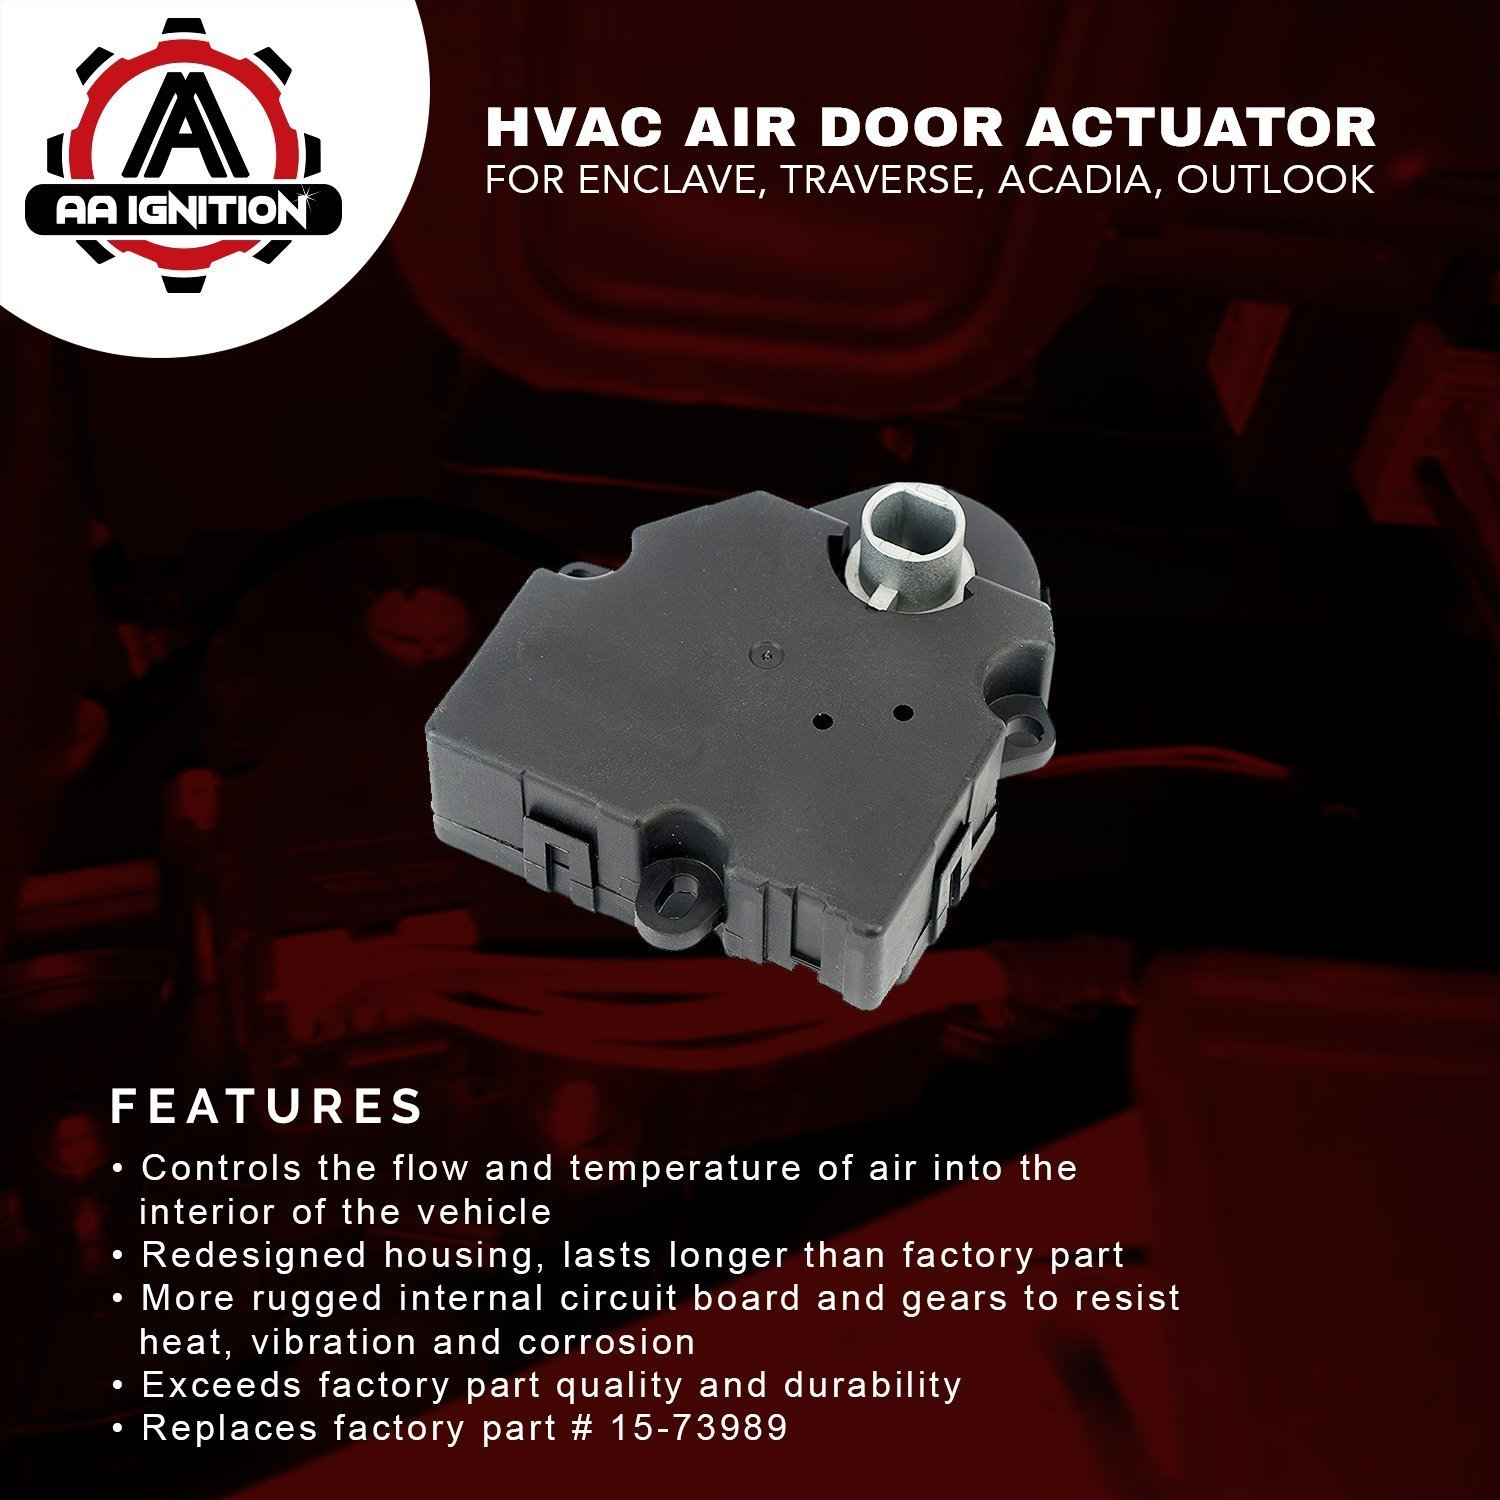 Hvac Air Door Actuator Replaces 15 73989 604 140 2010 Saturn Outlook Fuse Box 20826182 1573989 Fits Chevy Traverse 2009 2011 2012 Gmc Acadia 2007